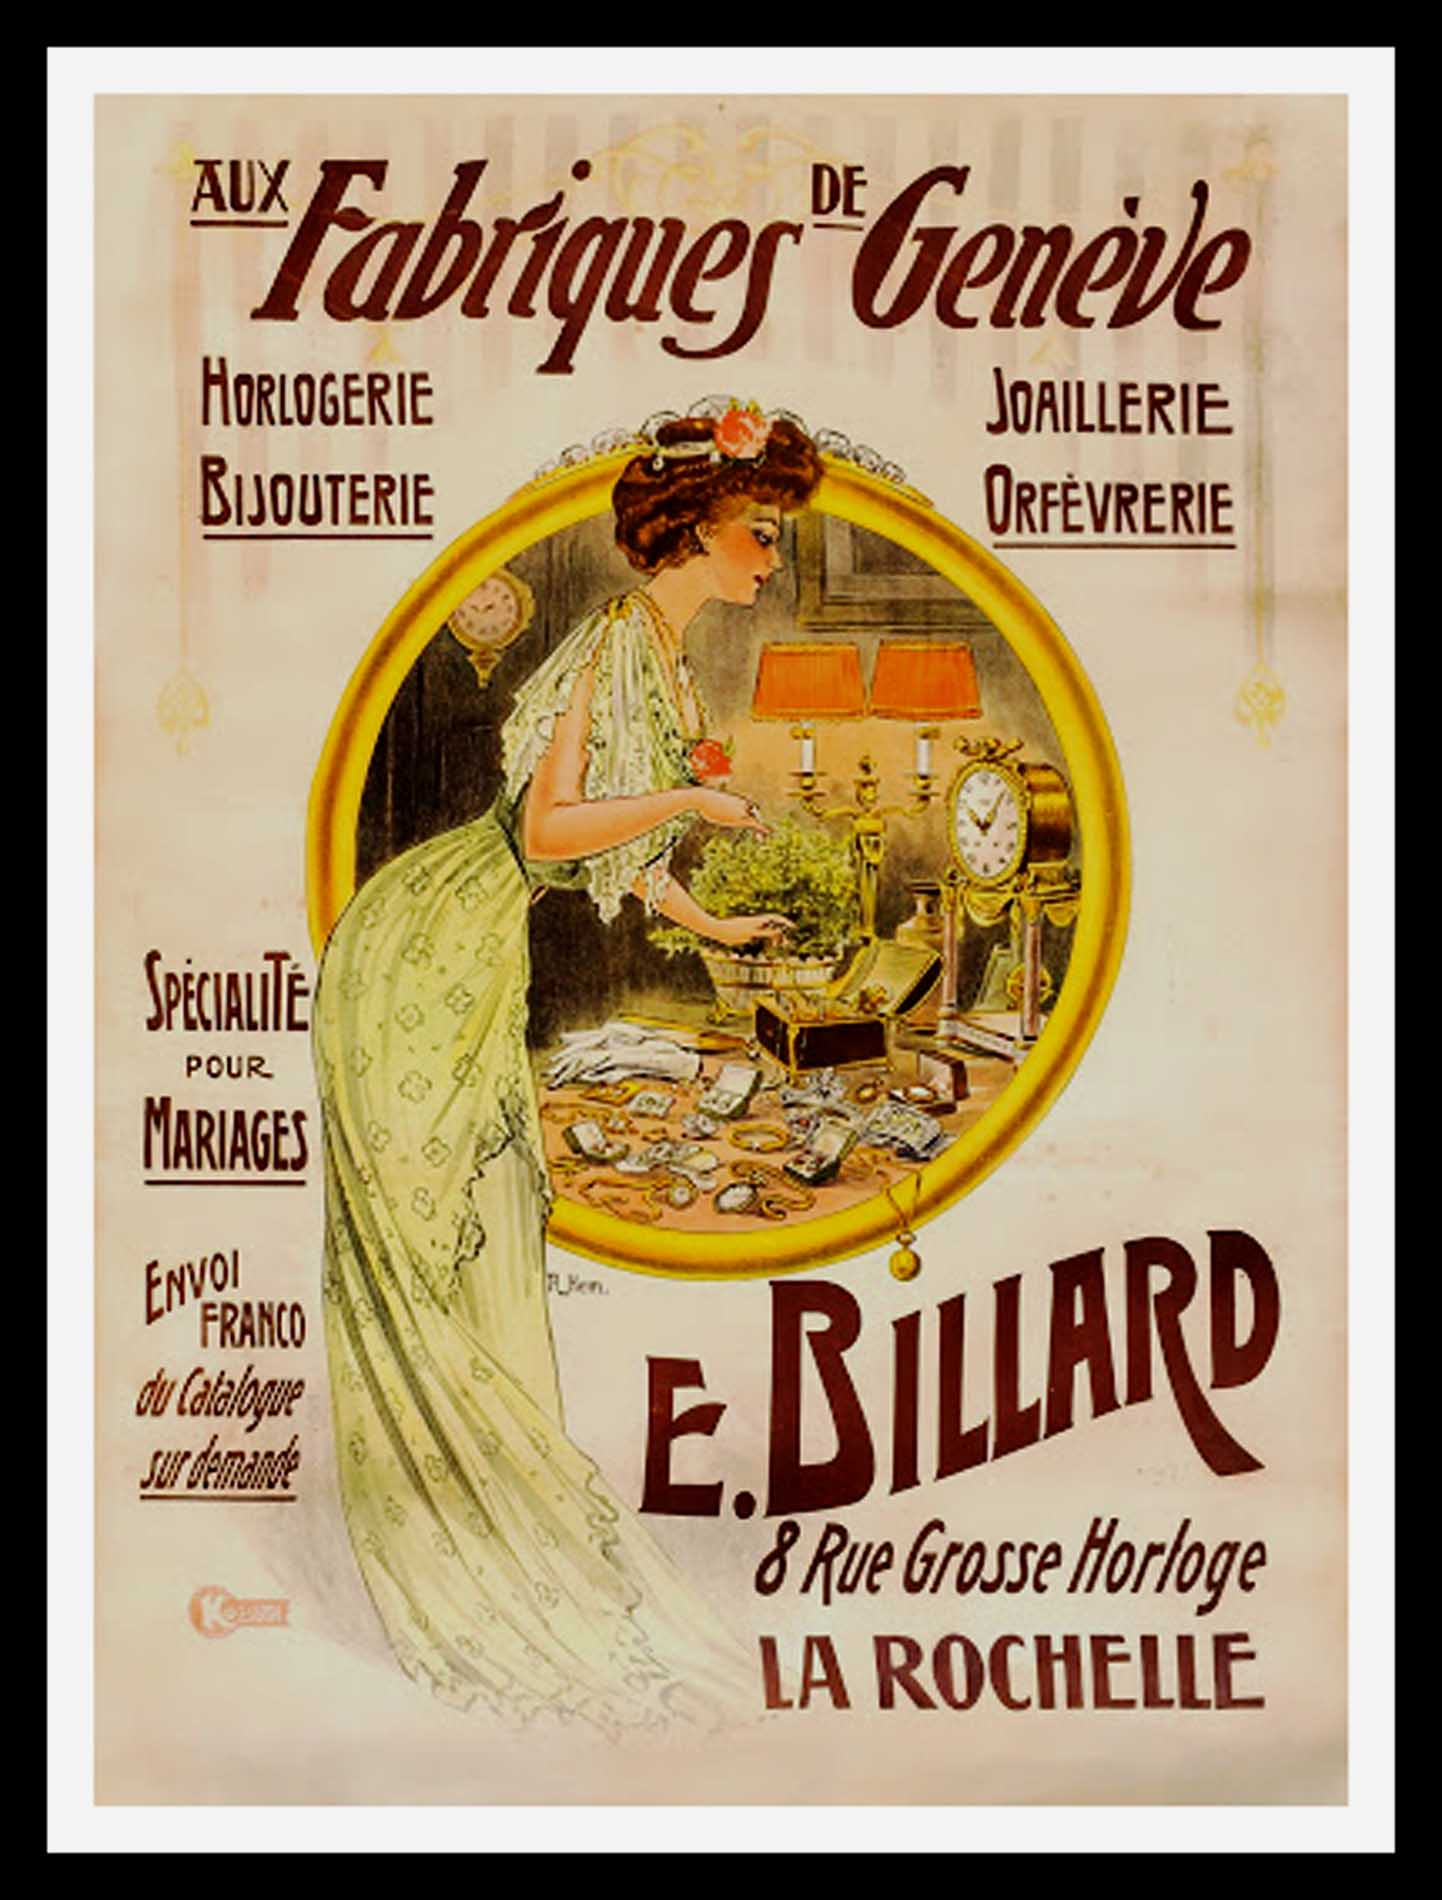 "(alt=""original vintage advertising poster, Aux Fabriques de GENEVE, jewelry, signed in the plate Raoul Edward HEM, 1895, printed by KOSSUTH PARIS"")"